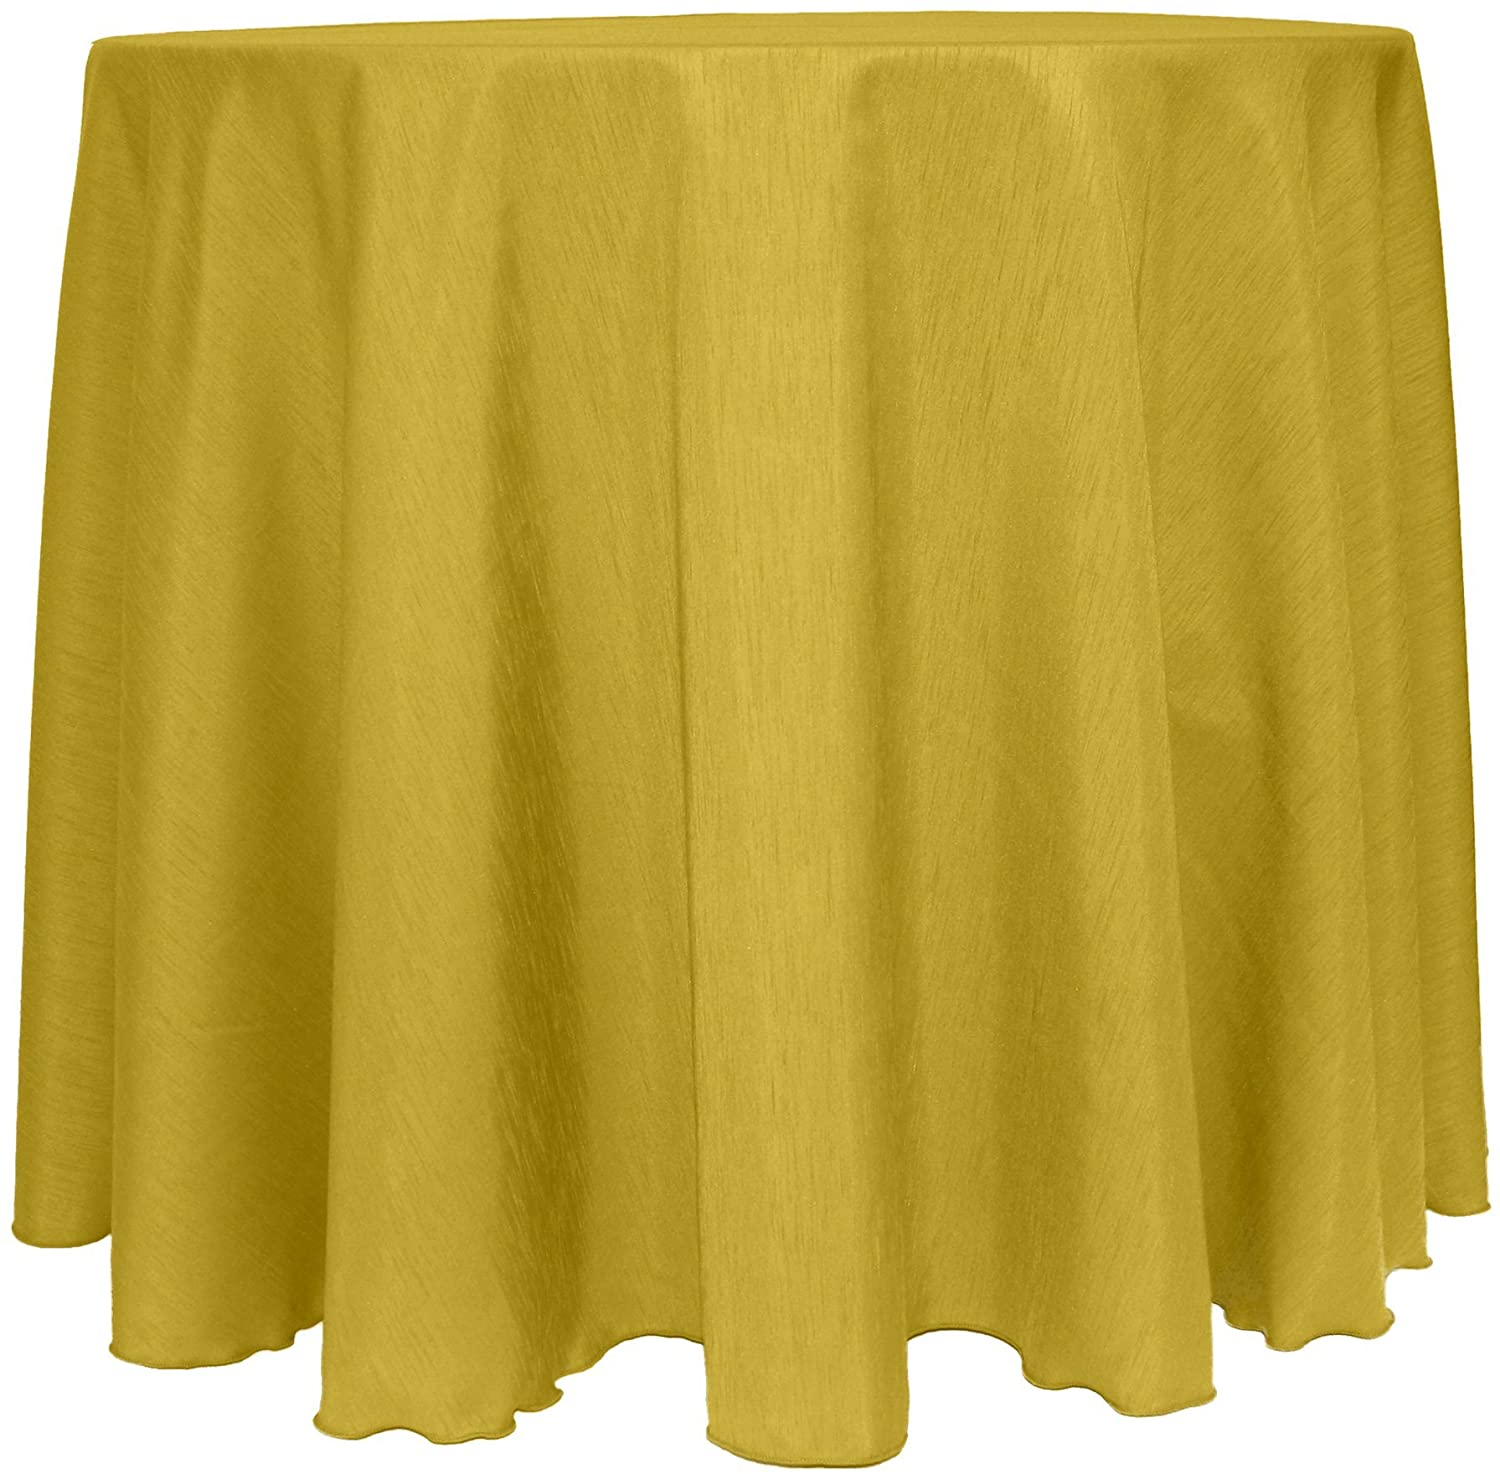 Ultimate Textile -5 Pack- Reversible Shantung Satin - Majestic 114-Inch Round Tablecloth, Gold